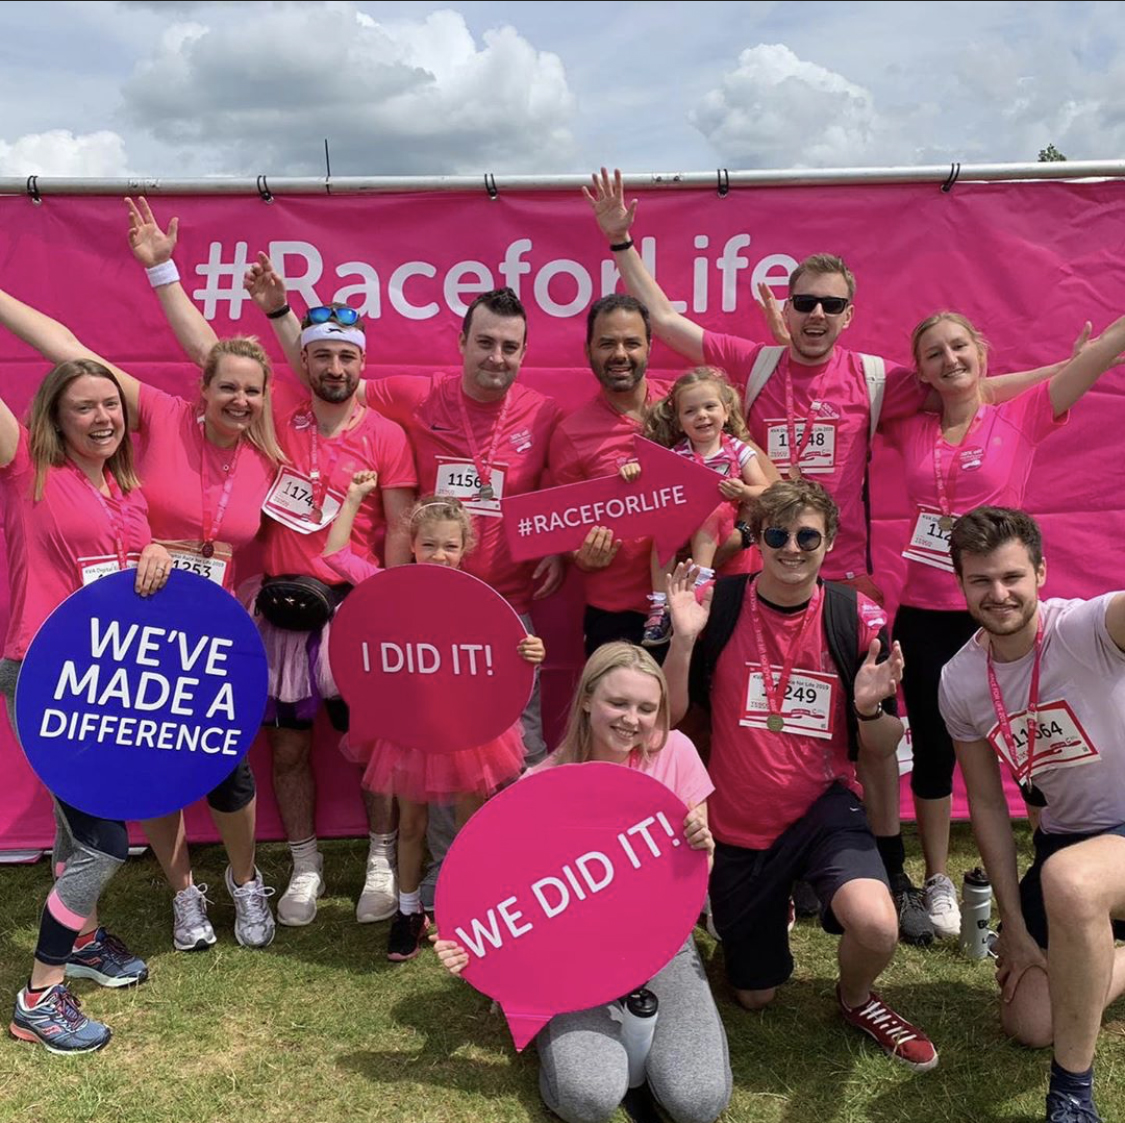 KVA race for life charity